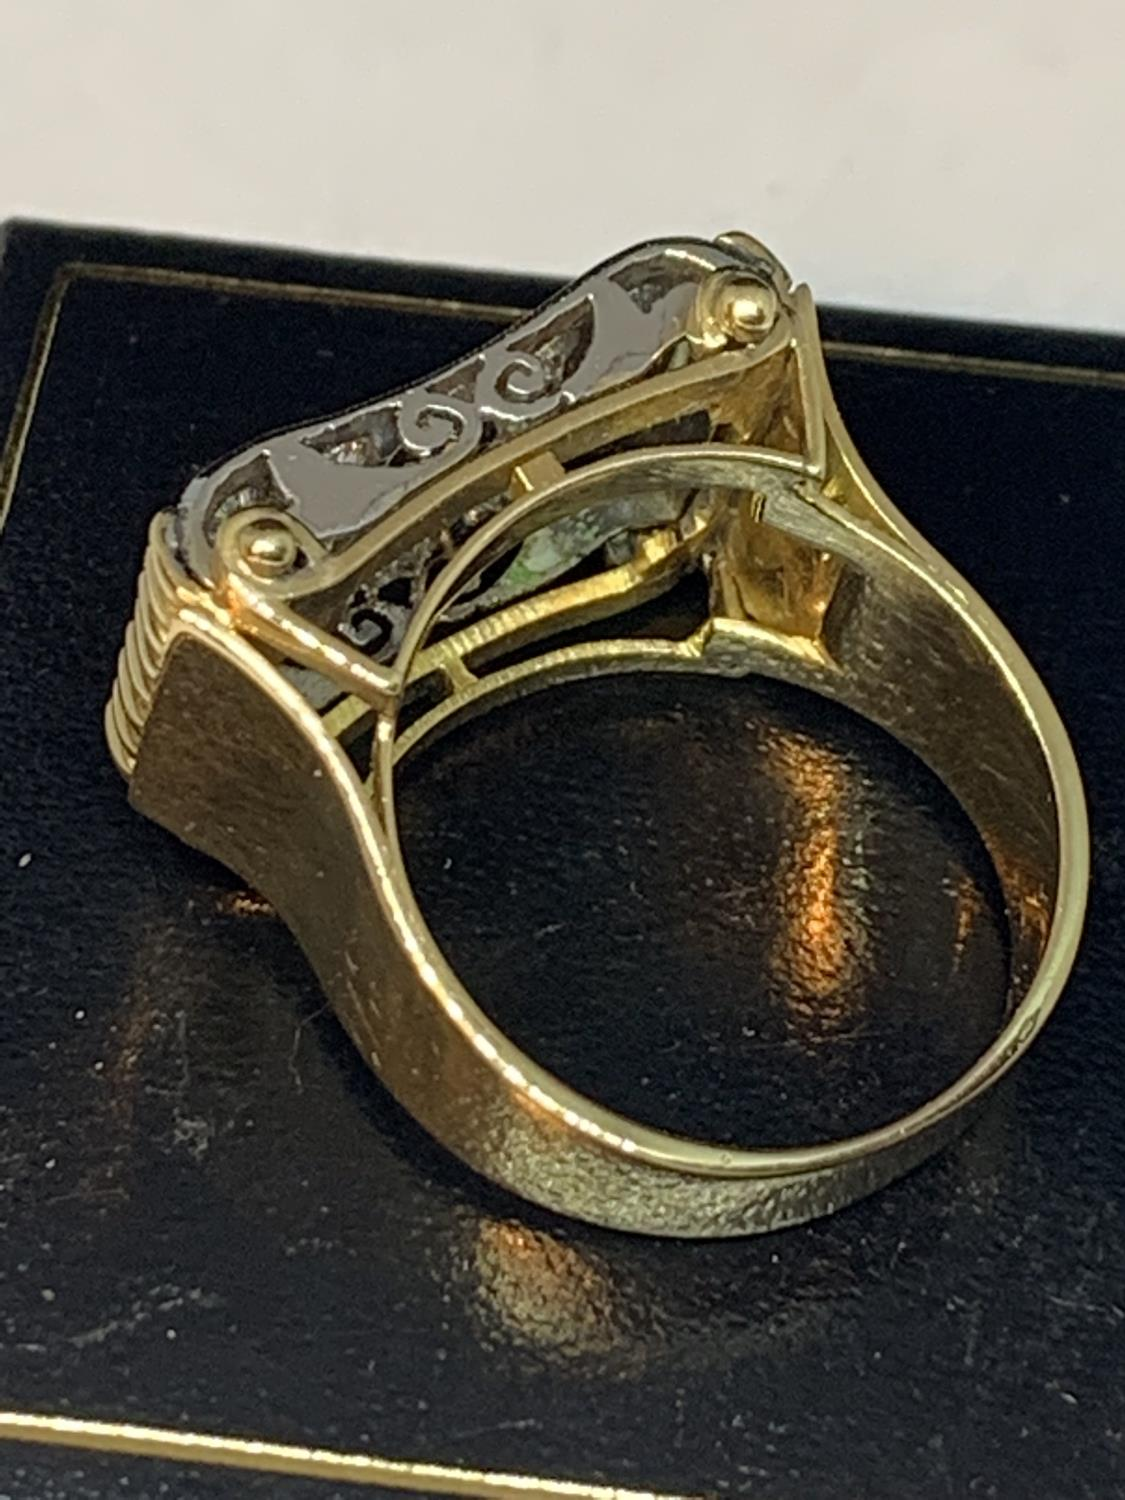 A HEAVY 18 CARAT GOLD RING WITH FIFTEEN DIAMONDS SET IN A RECTANGLE OF DIAMOND CHIPS GROSS WEIGHT 13 - Image 5 of 10